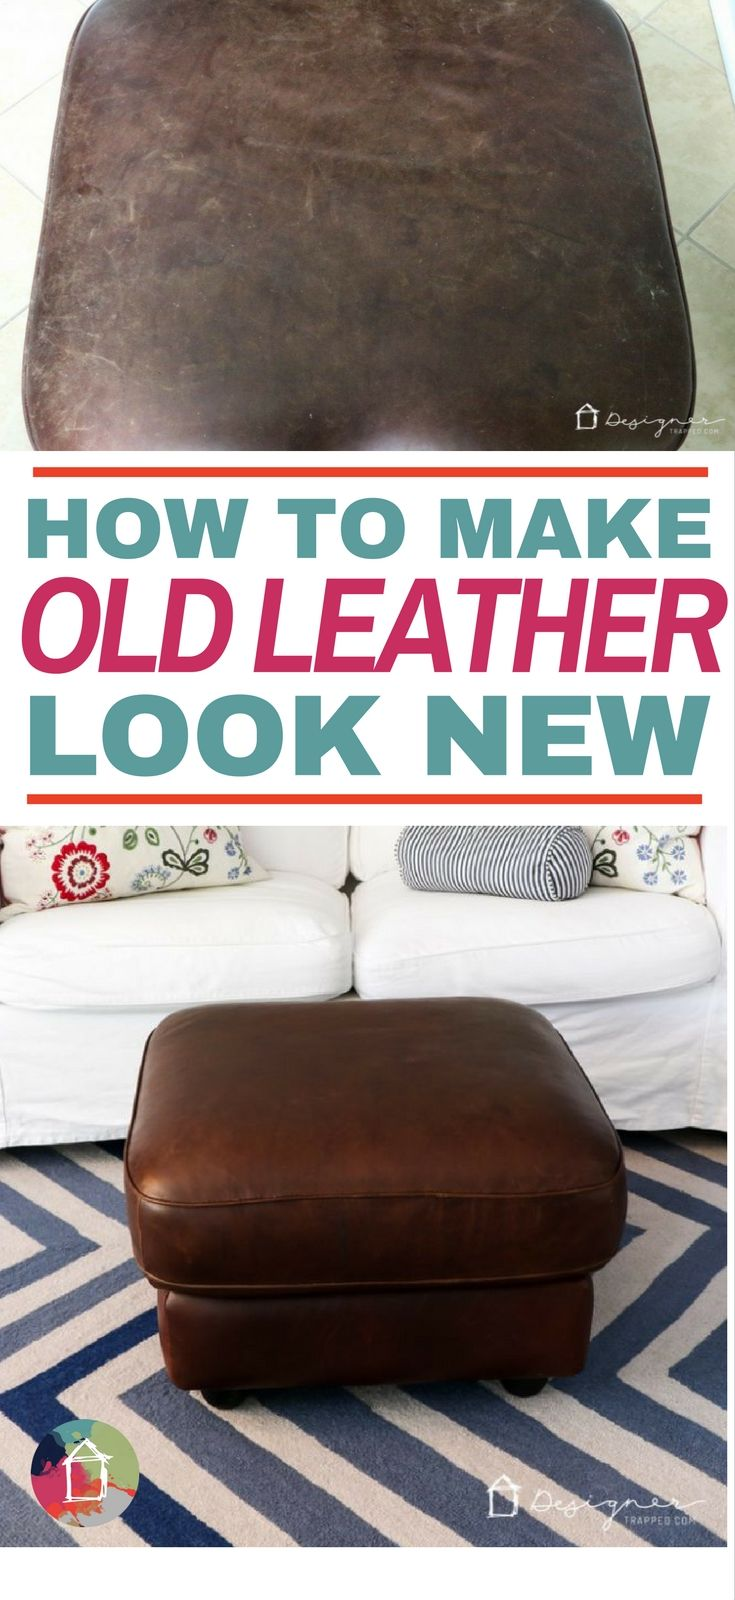 Leather Sofa Cleaning Repair Company Kids Bed Ikea Learn How To Restore Furniture Hometalk Diy Pinterest I Had No Idea But This Makes It Look So Easy Can T Wait Try On My Couch